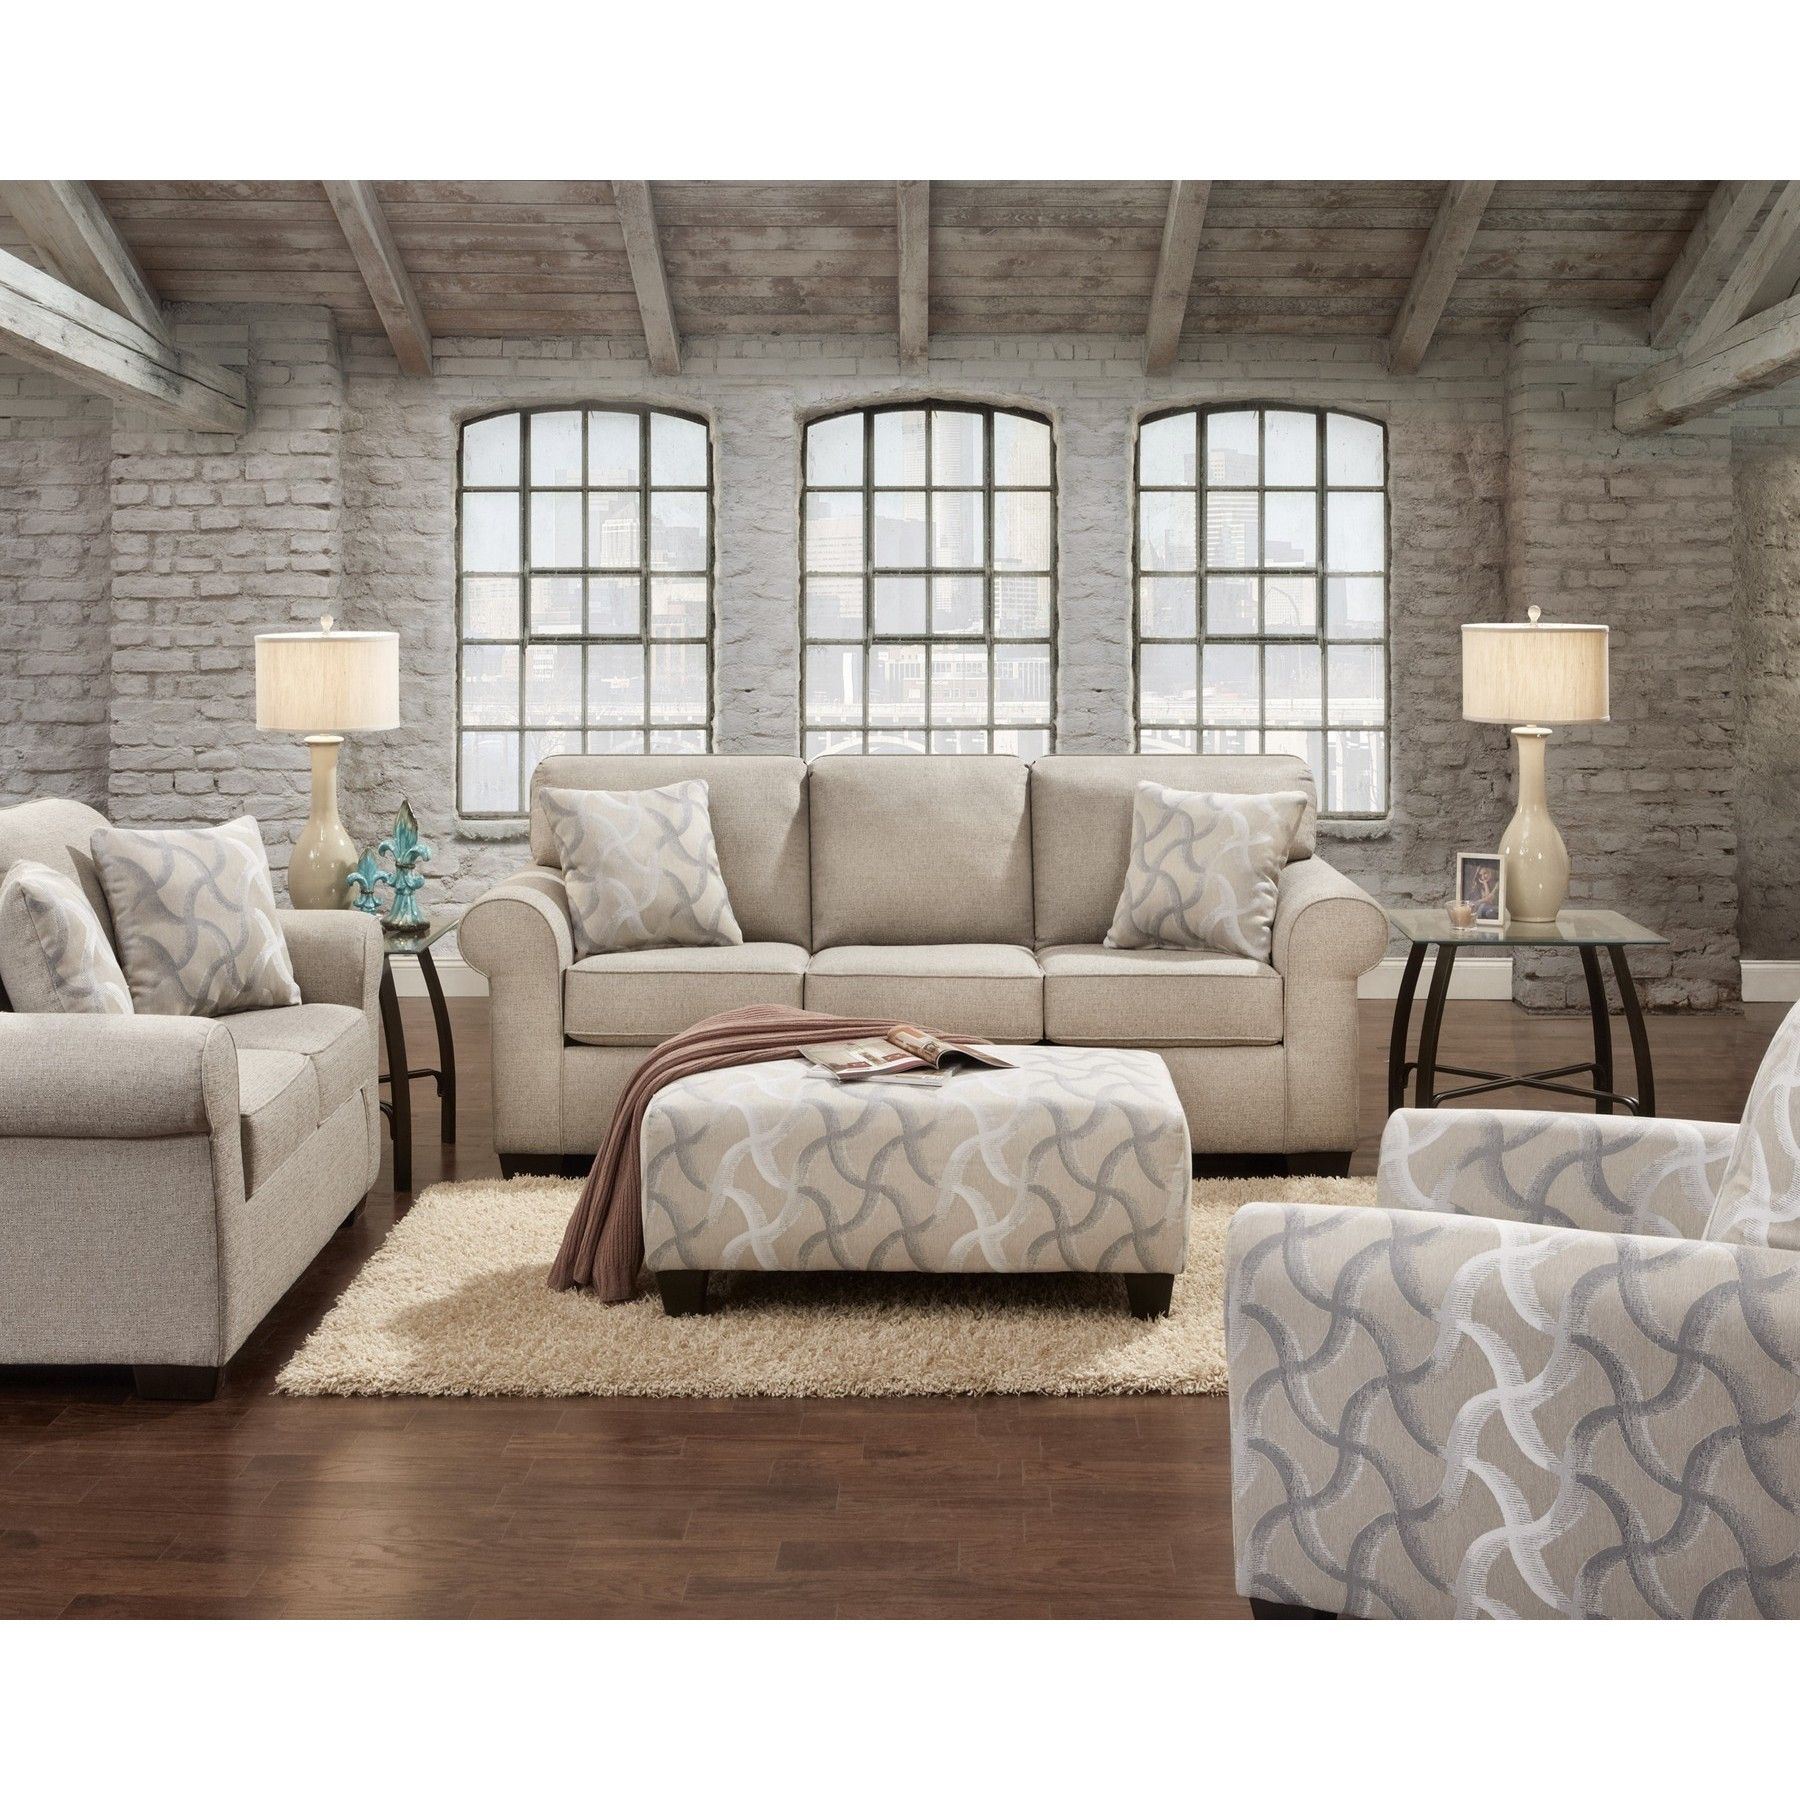 Best Sofa Trendz Clarissa 3 Piece Sofa Set Clarissa 3 Pc Sofa 400 x 300